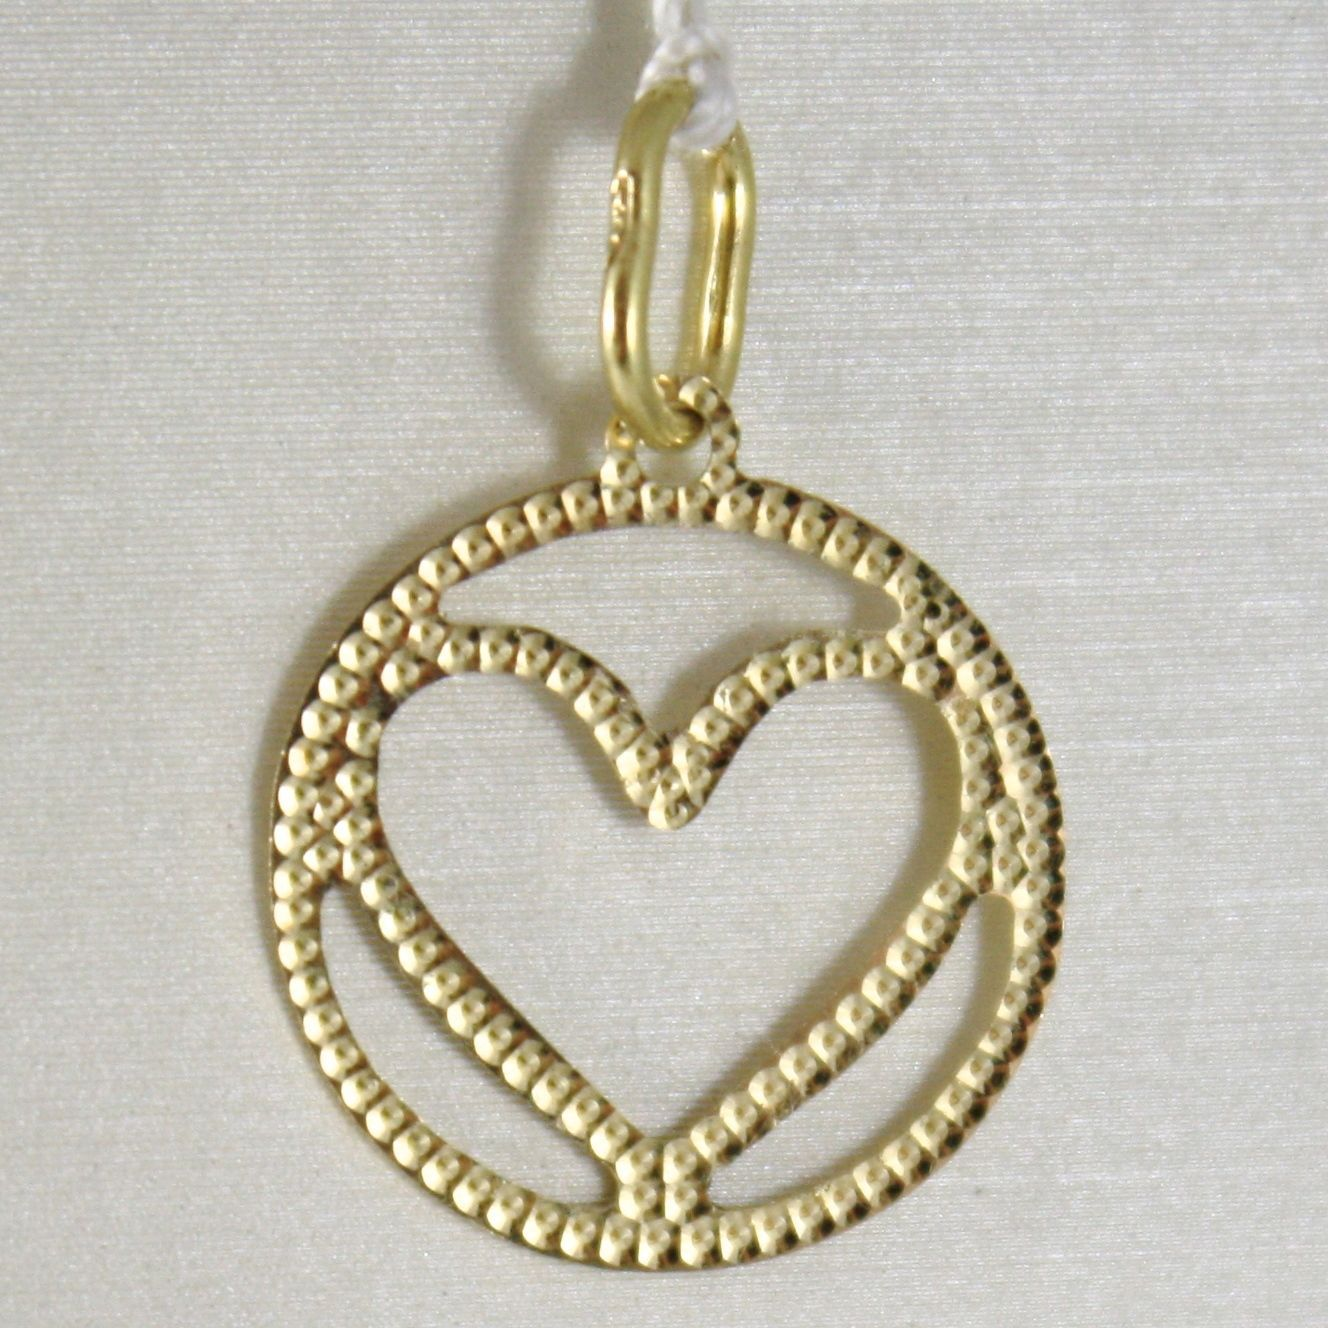 Pendant Gold Yellow or White 750 18k, Heart, finely worked, Made in Italy